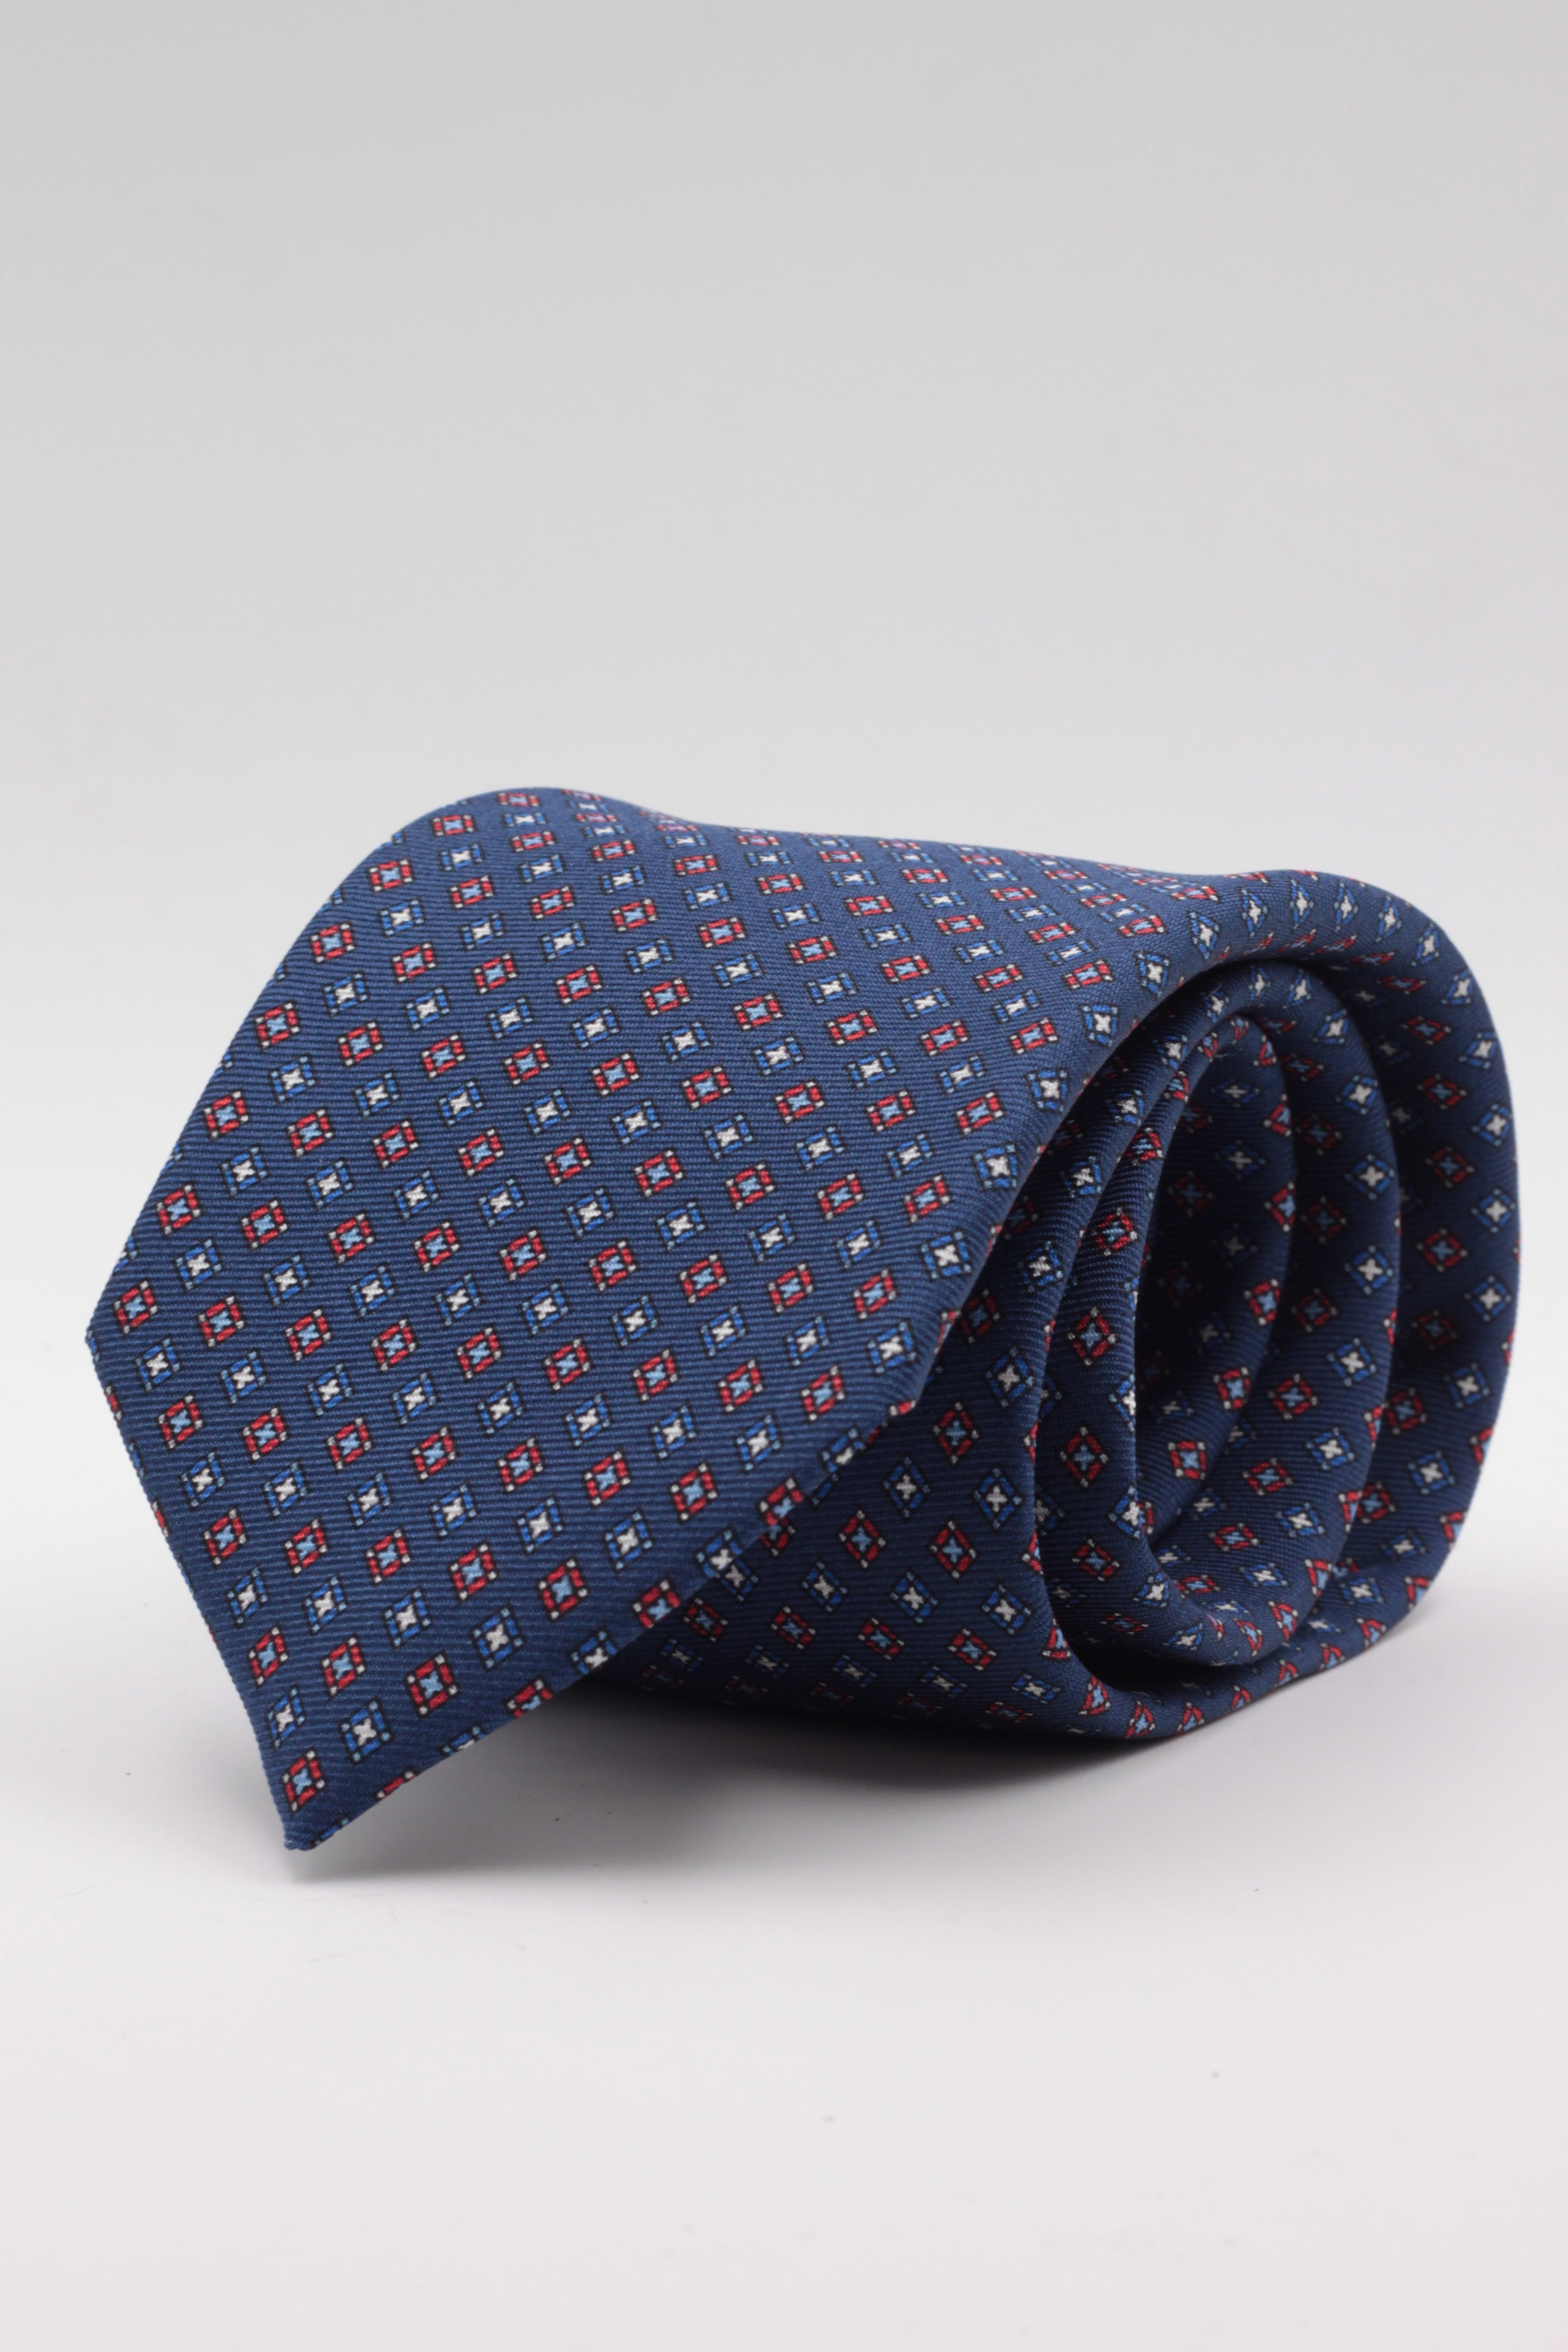 Holliday & Brown for Cruciani & Bella 100% printed Silk Self tipped Royal blue, red and olympic blue motif tie Handmade in Italy 8 cm x 150 cm